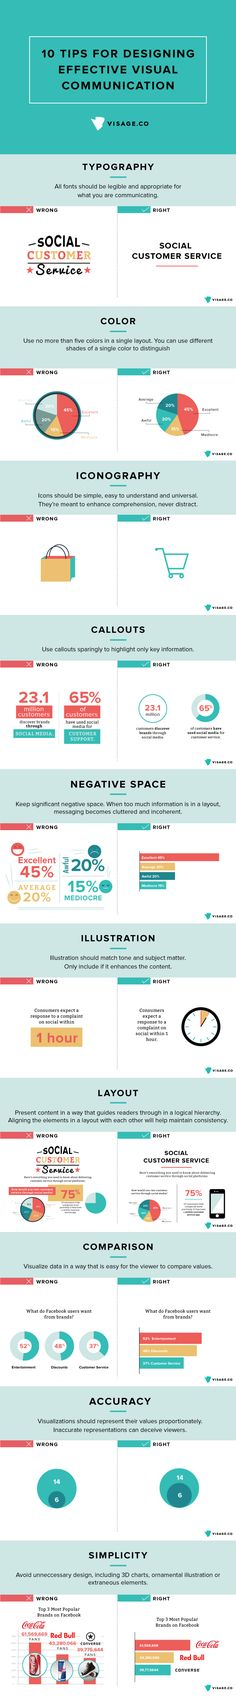 Designing Effective Visual Communication #Infographic | via #BornToBeSocial - Pinterest Marketing